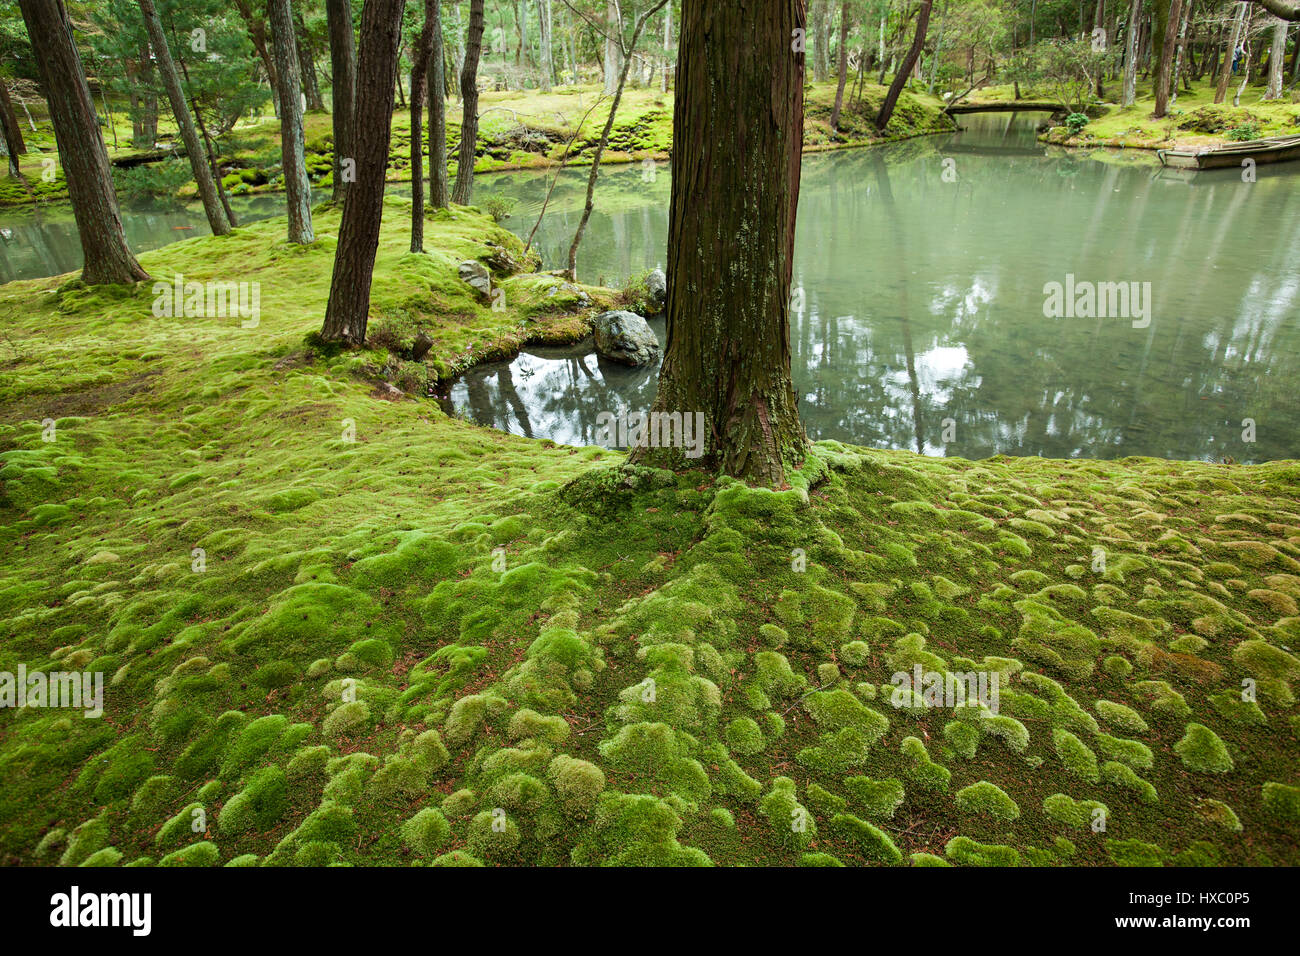 The Moss Garden At Saihoji Temple Is One Of The Few Temples In